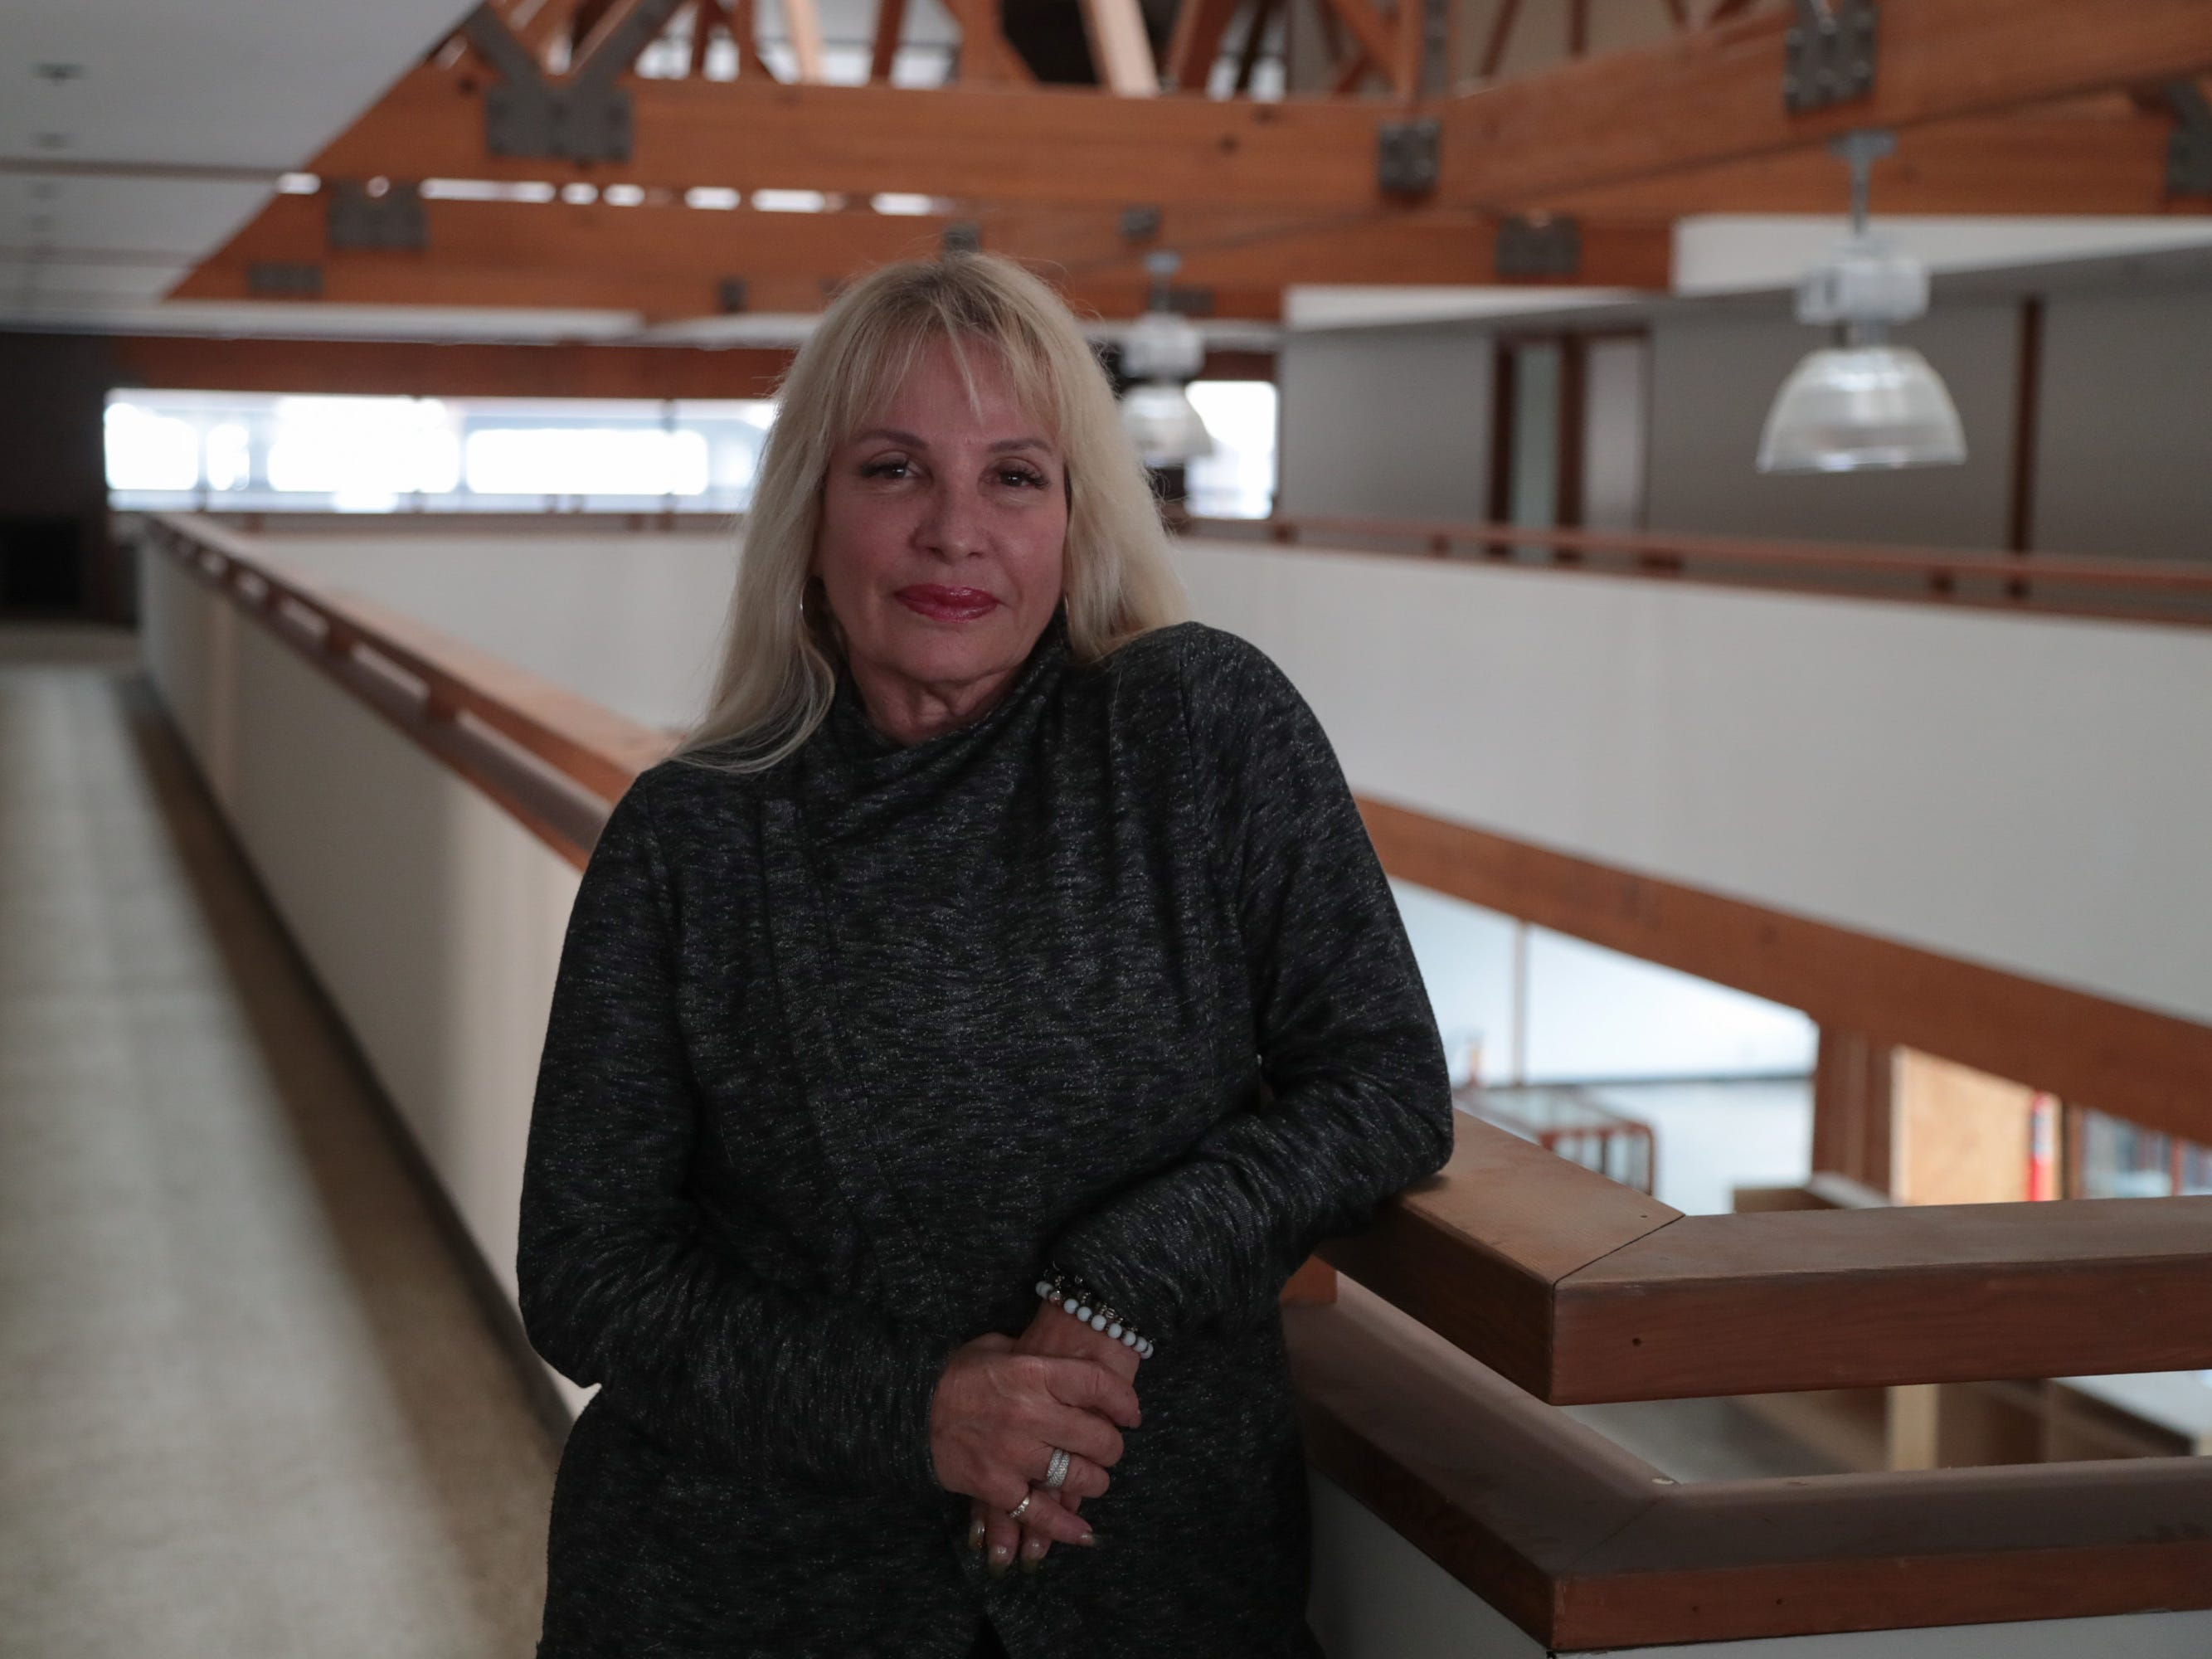 Julie Montante will be opening a cannabis lounge in a former bank building in downtown Palm Springs, Calif., January 16, 2018.